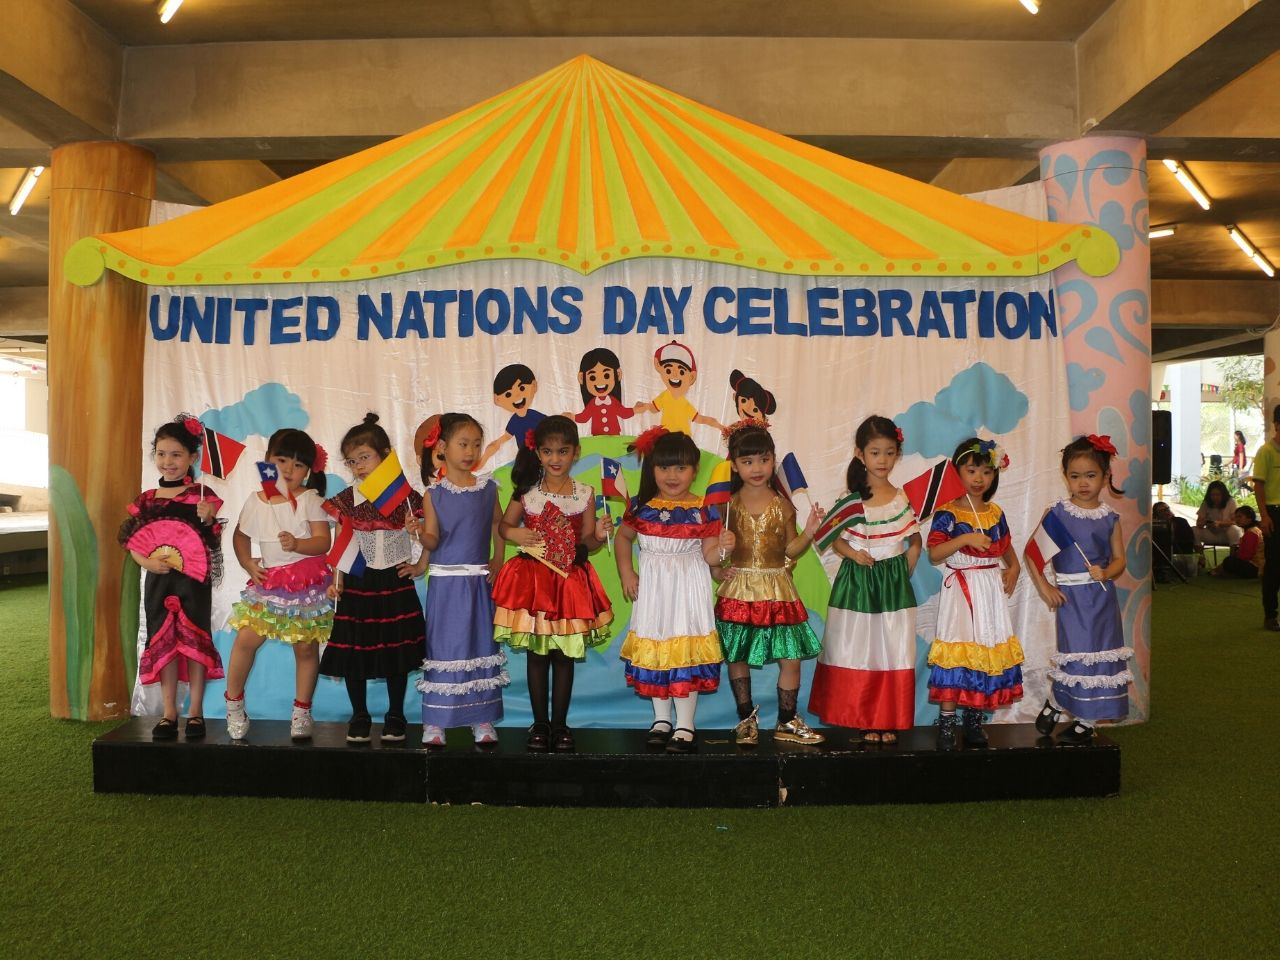 Lollypop United Nations Day